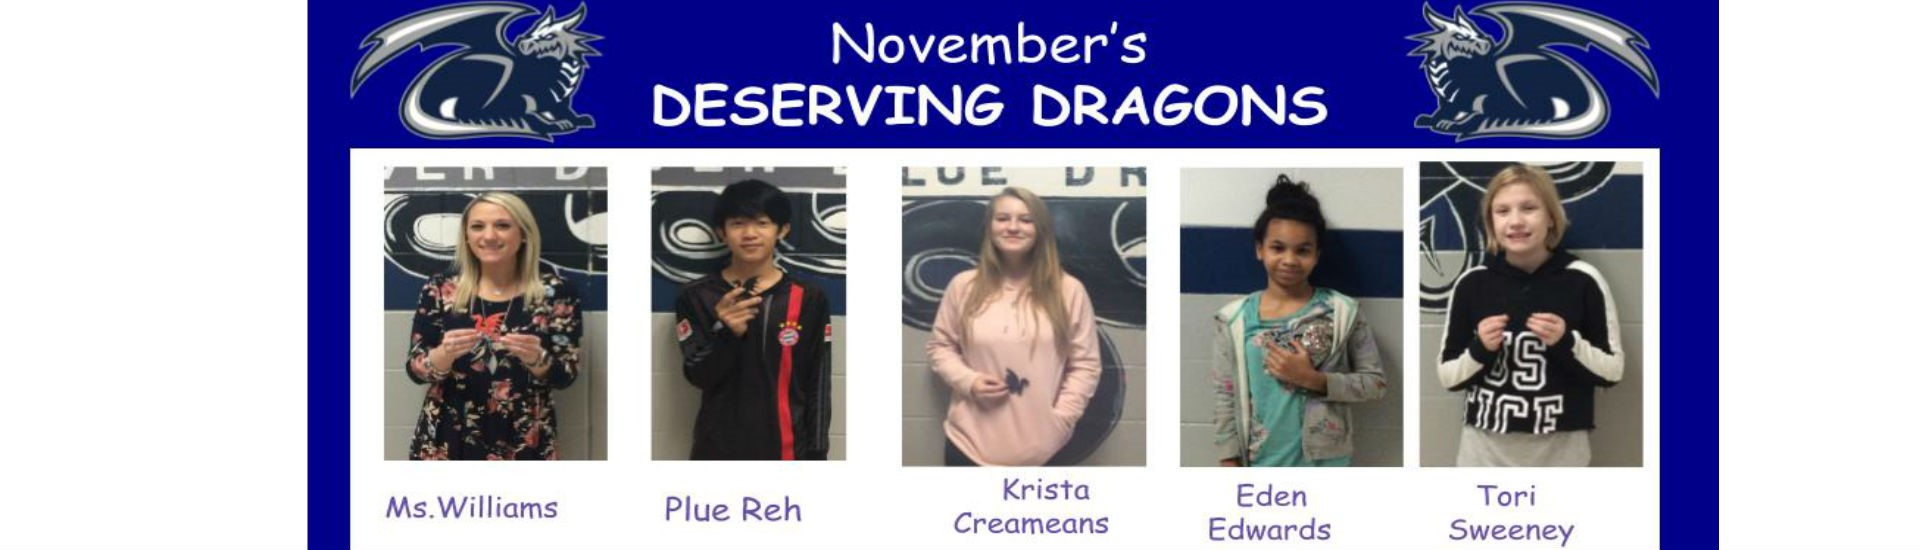 Here are our Deserving Dragons from November. Congrats to all of you!